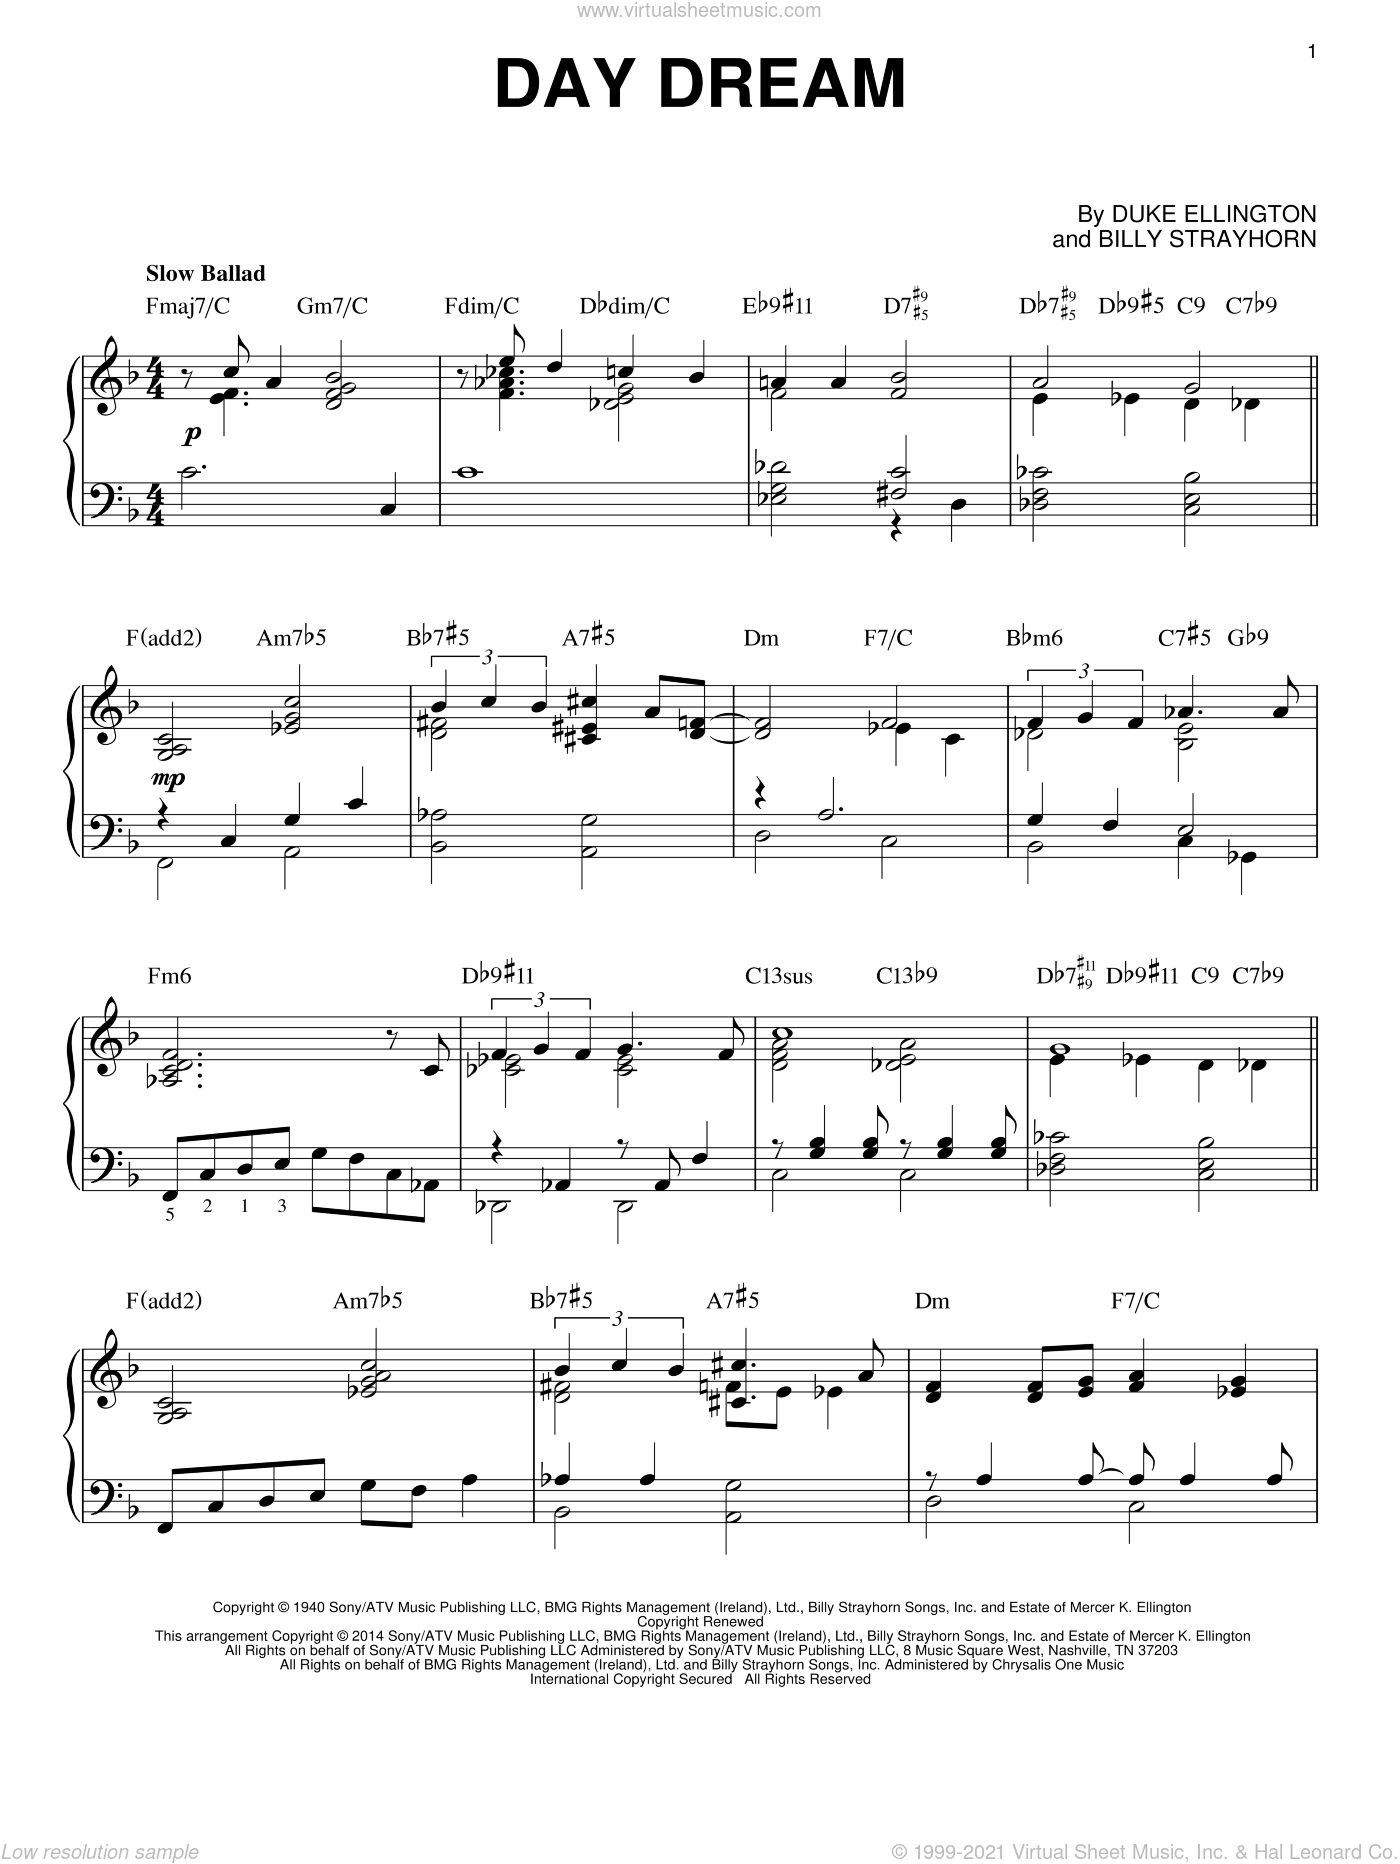 Day Dream sheet music for piano solo by Billy Strayhorn, intermediate skill level